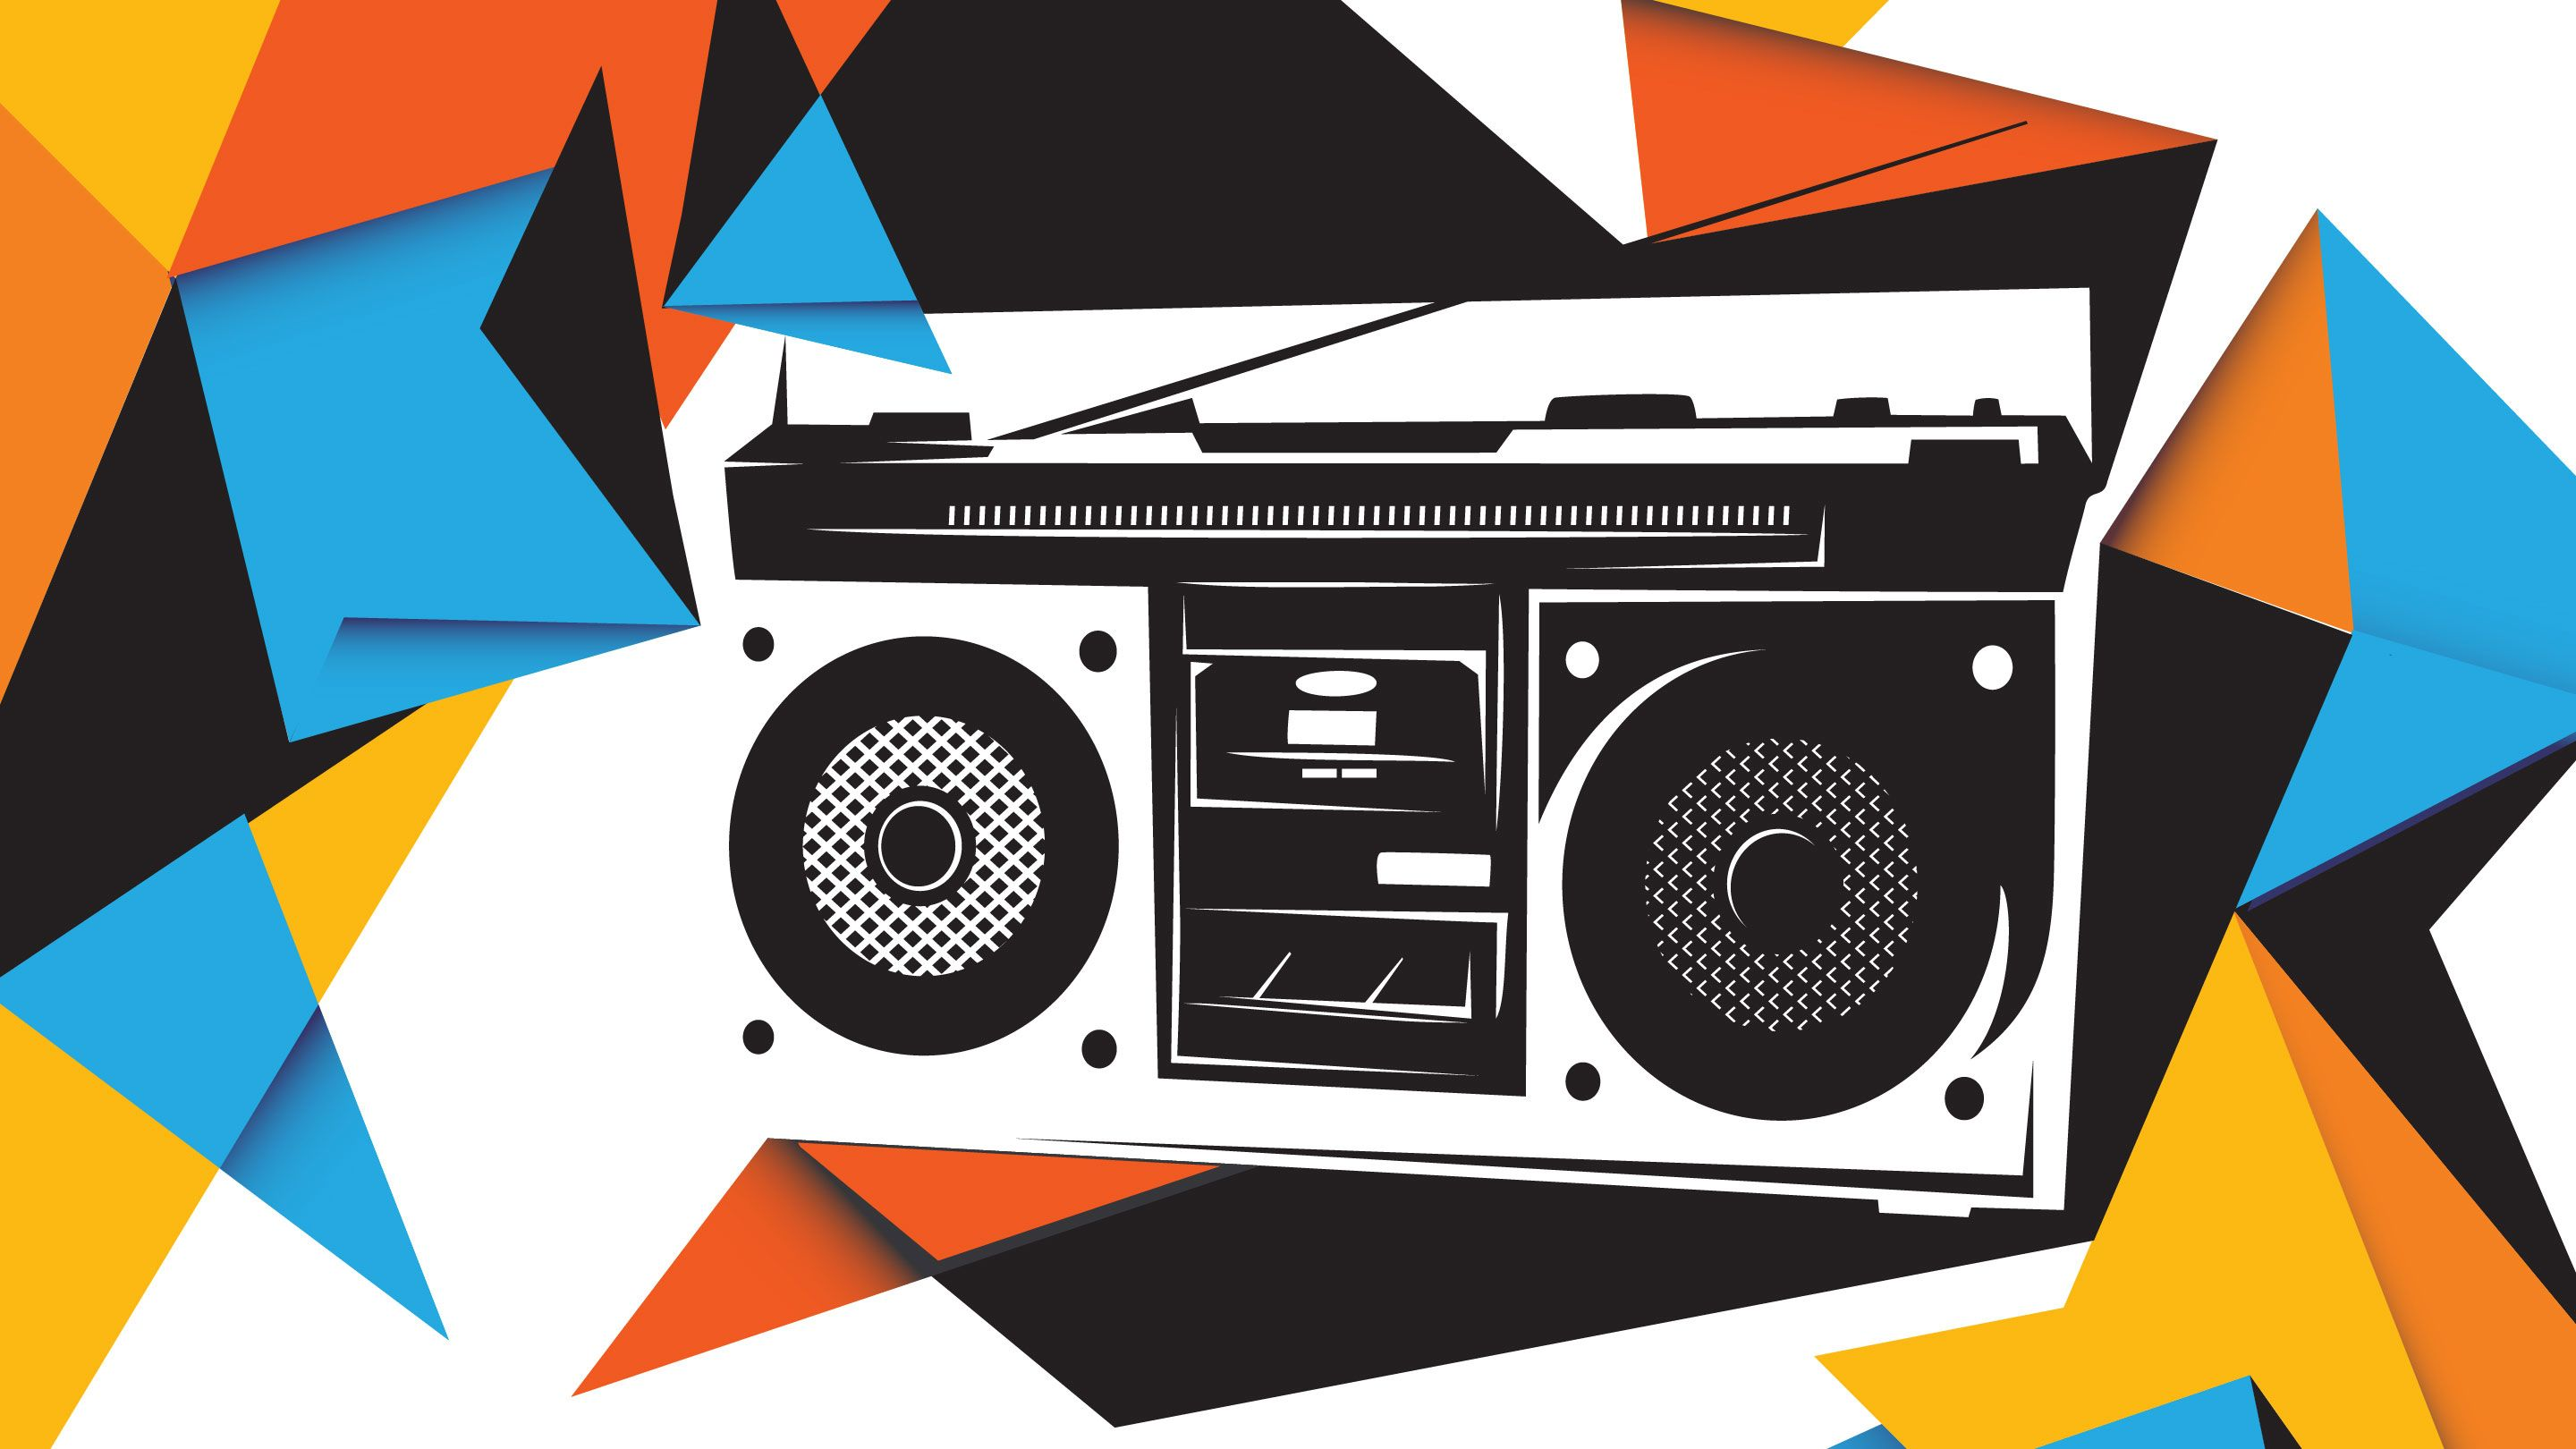 Stylized illustration of a boombox